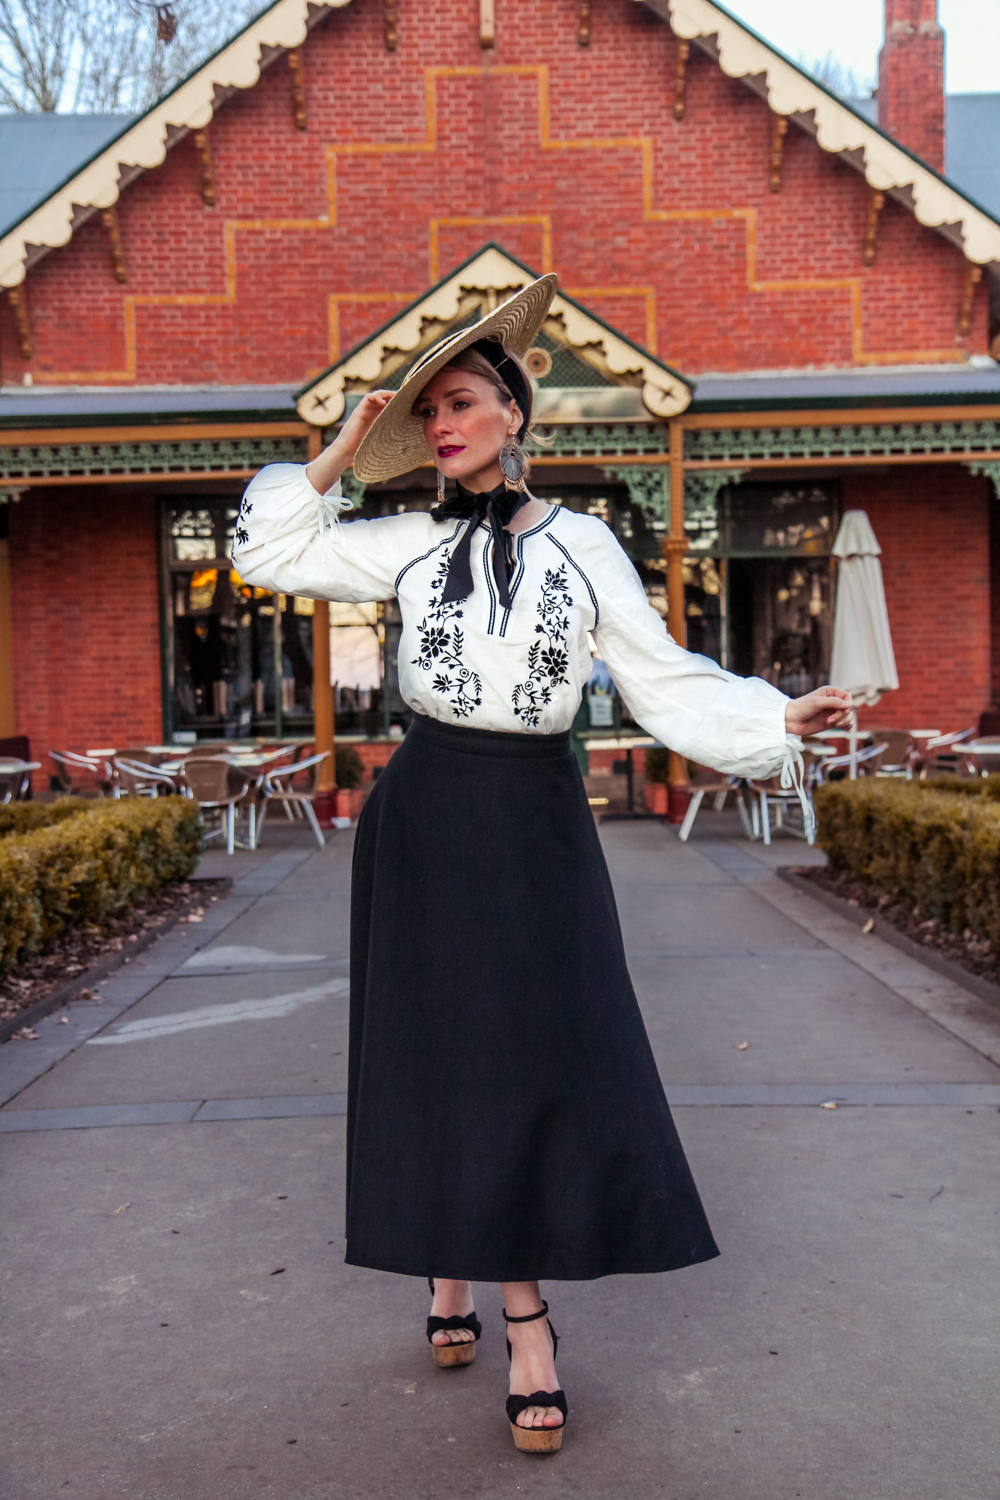 Liana of @findingfemme in Sportsgirl vyshyvanka embroidered top and black skirt